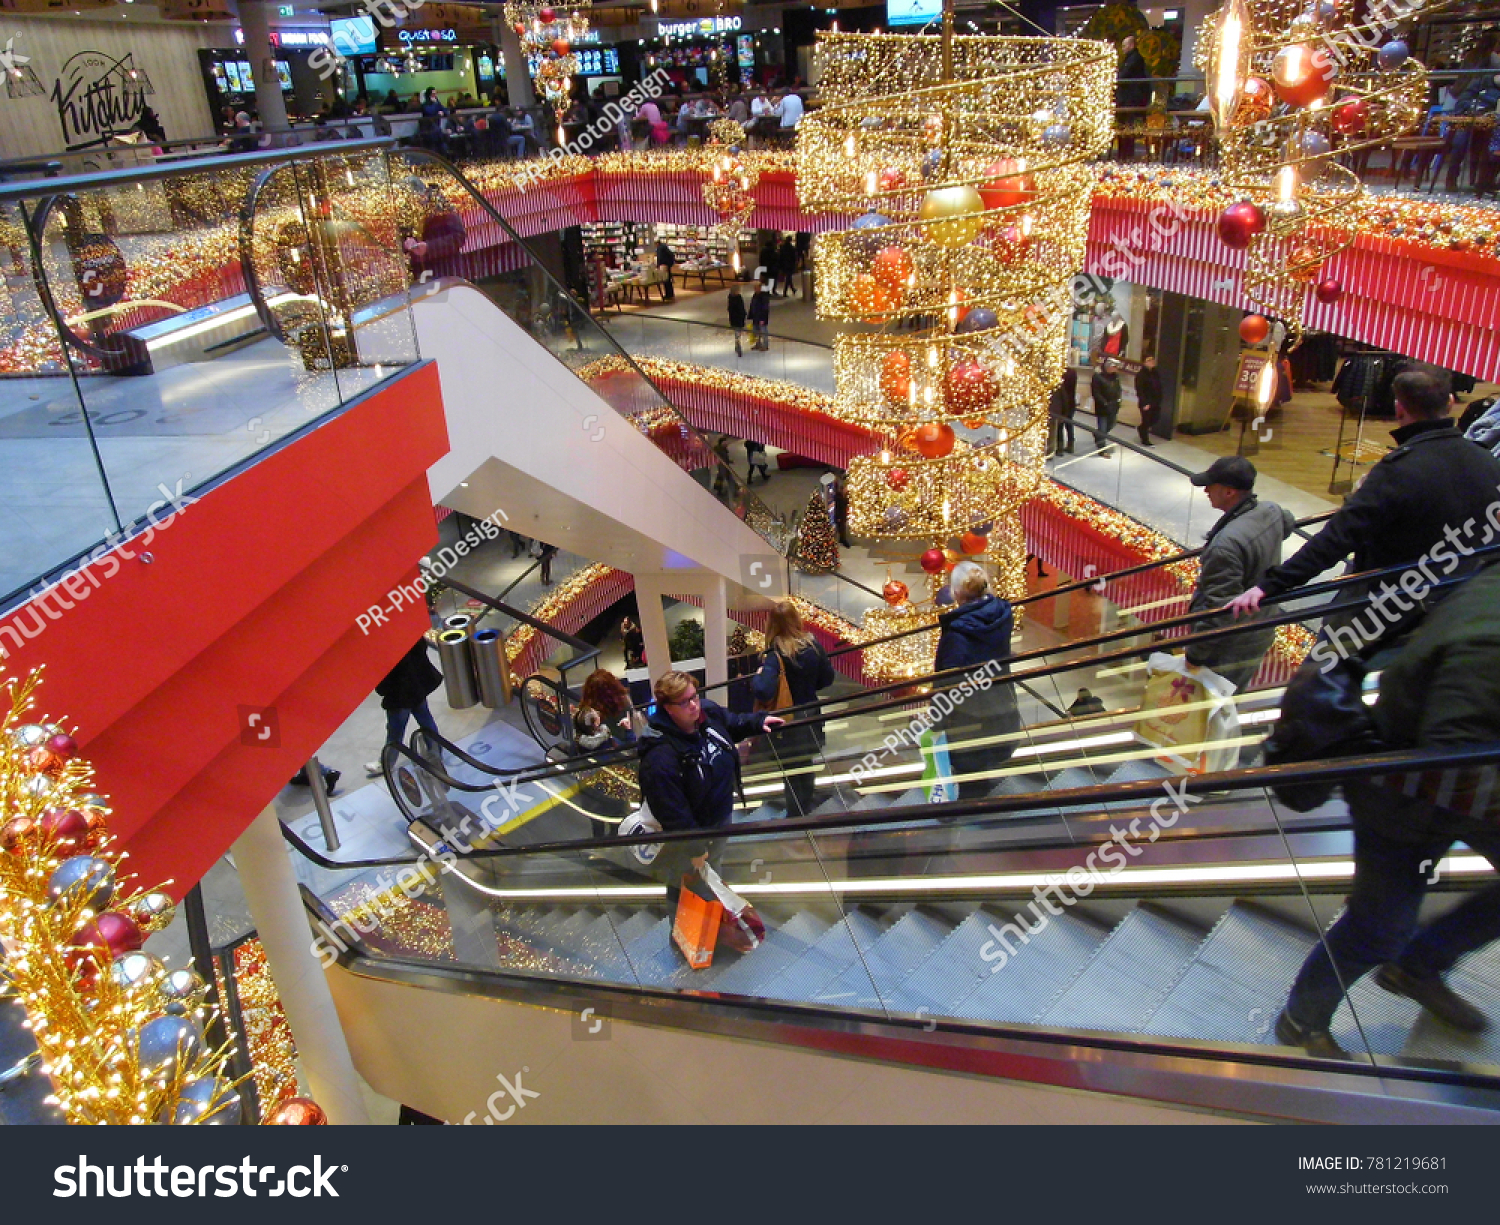 Bielefeld Shopping Bielefeld Nrw Germany 12 15 17 Stock Photo Edit Now 781219681